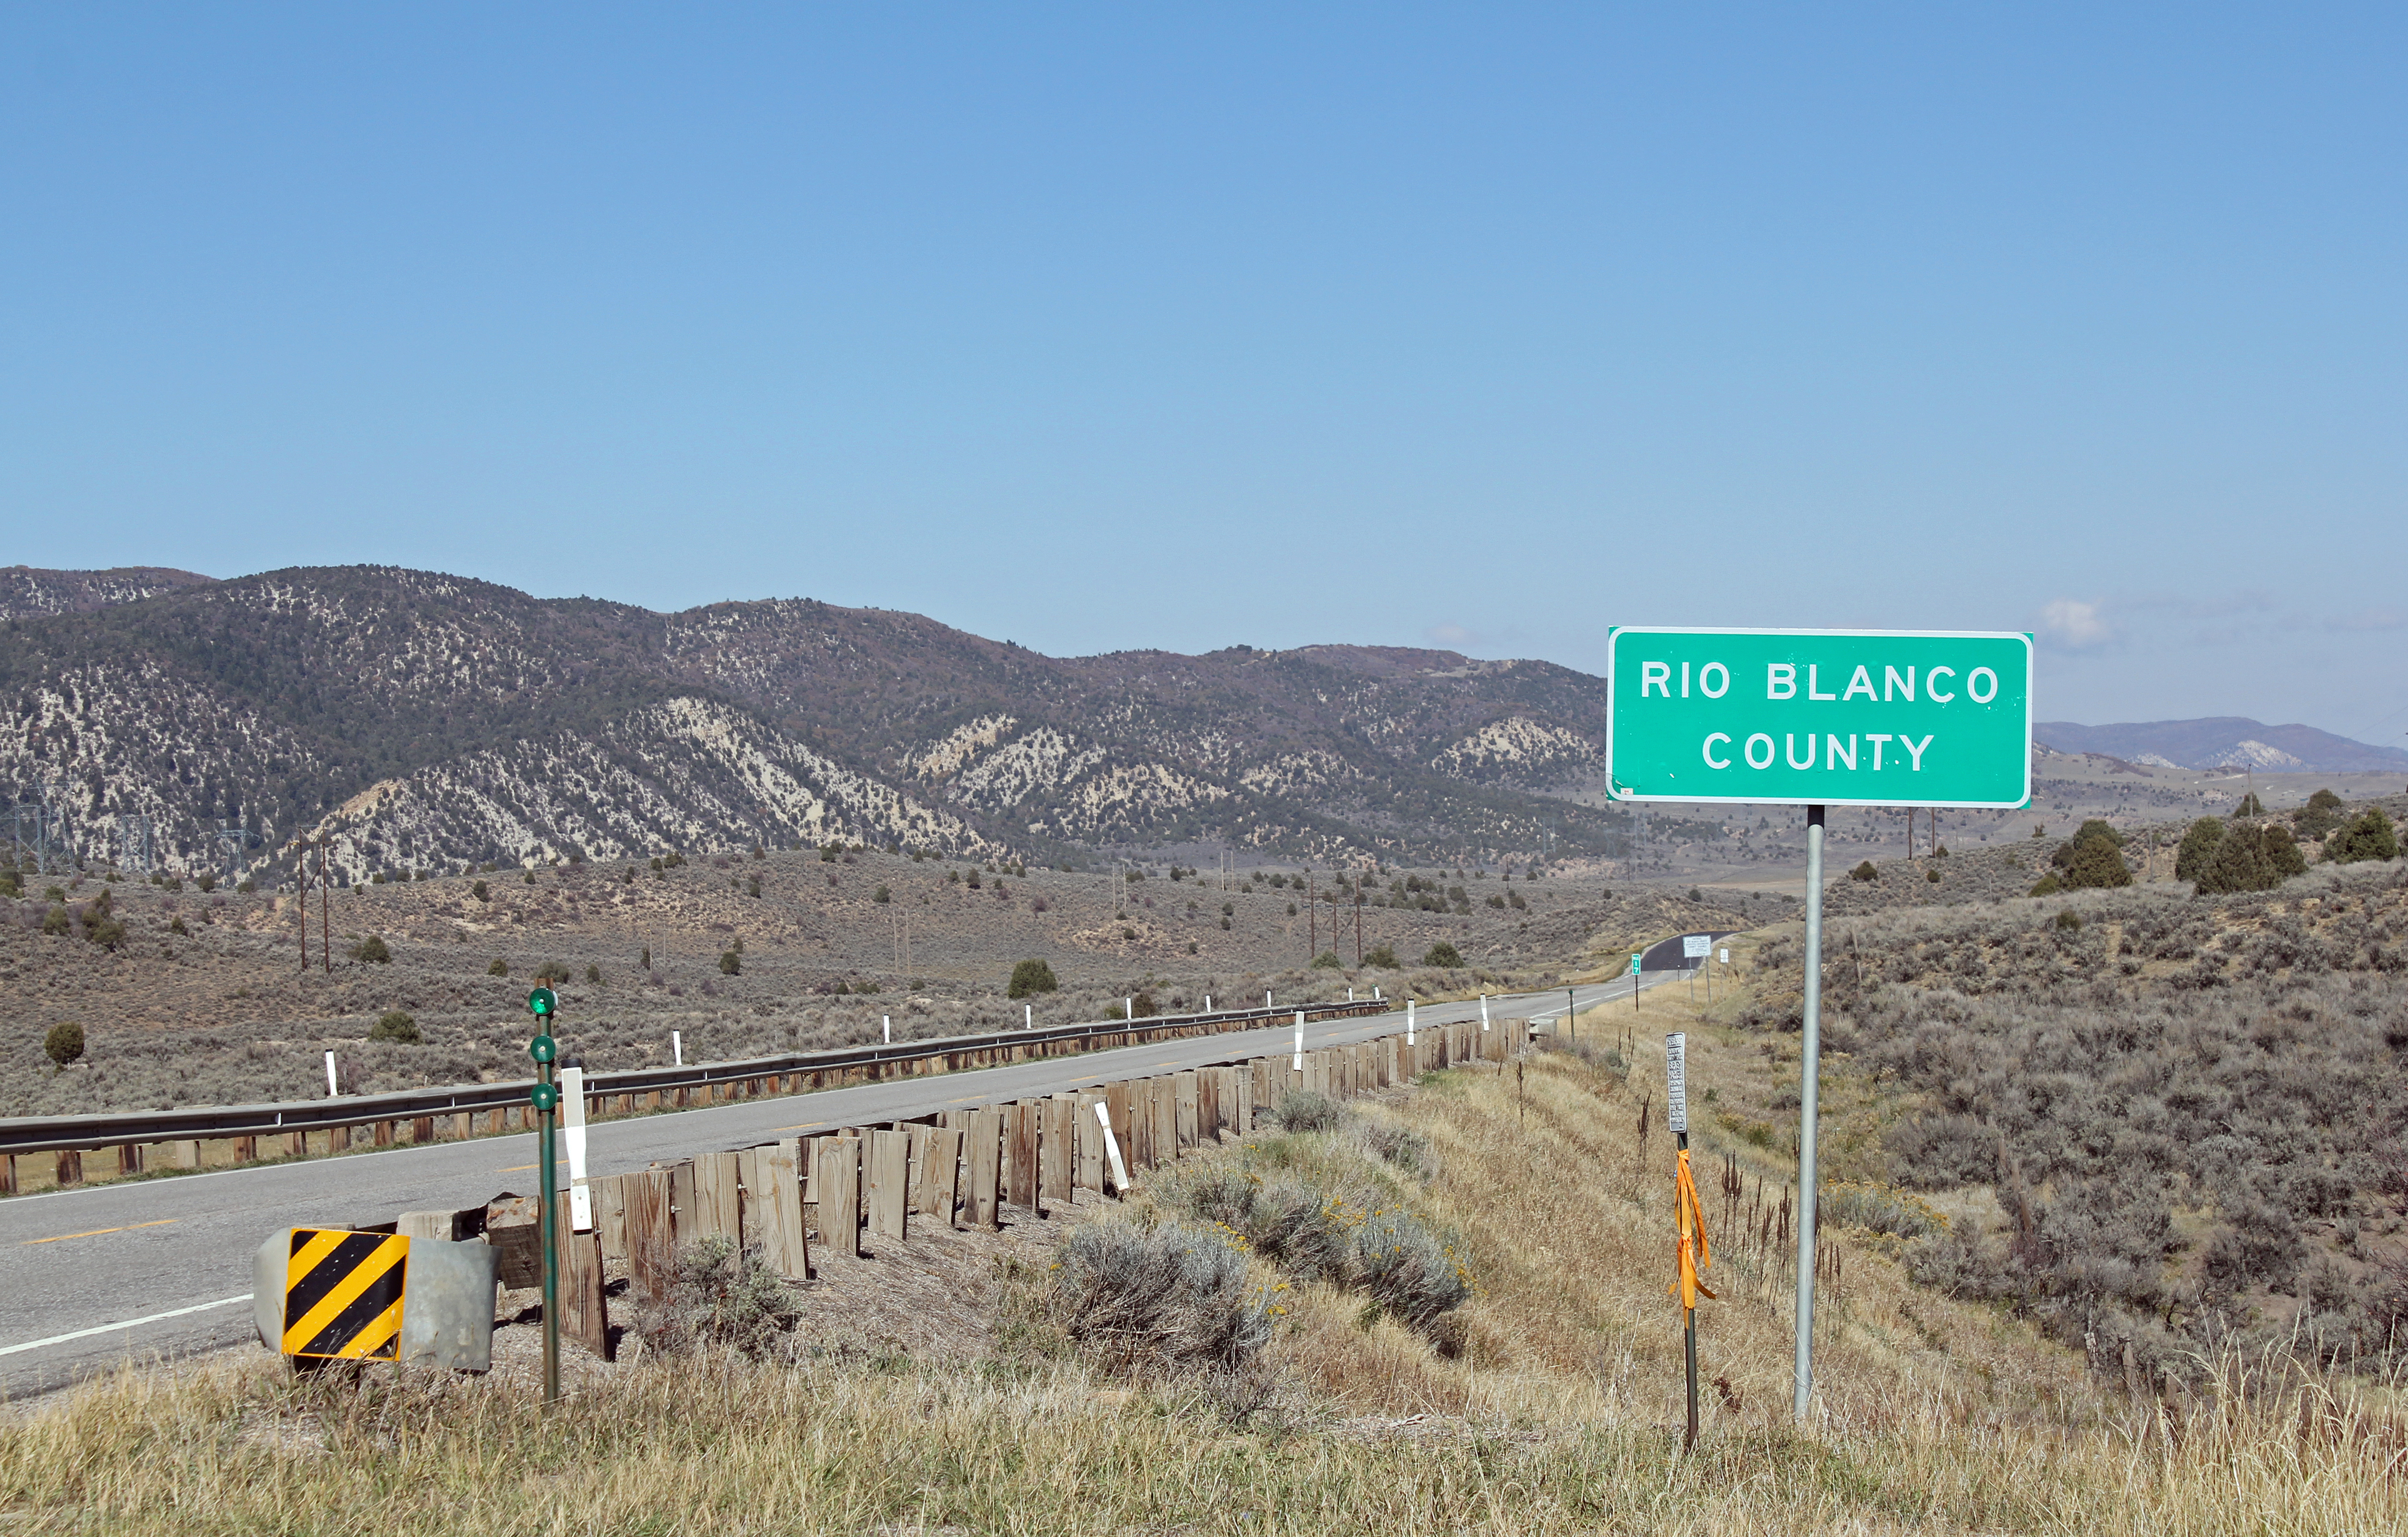 rio blanco Search rio blanco county real estate property listings to find homes for sale in rio blanco county, co browse houses for sale in rio blanco county today.